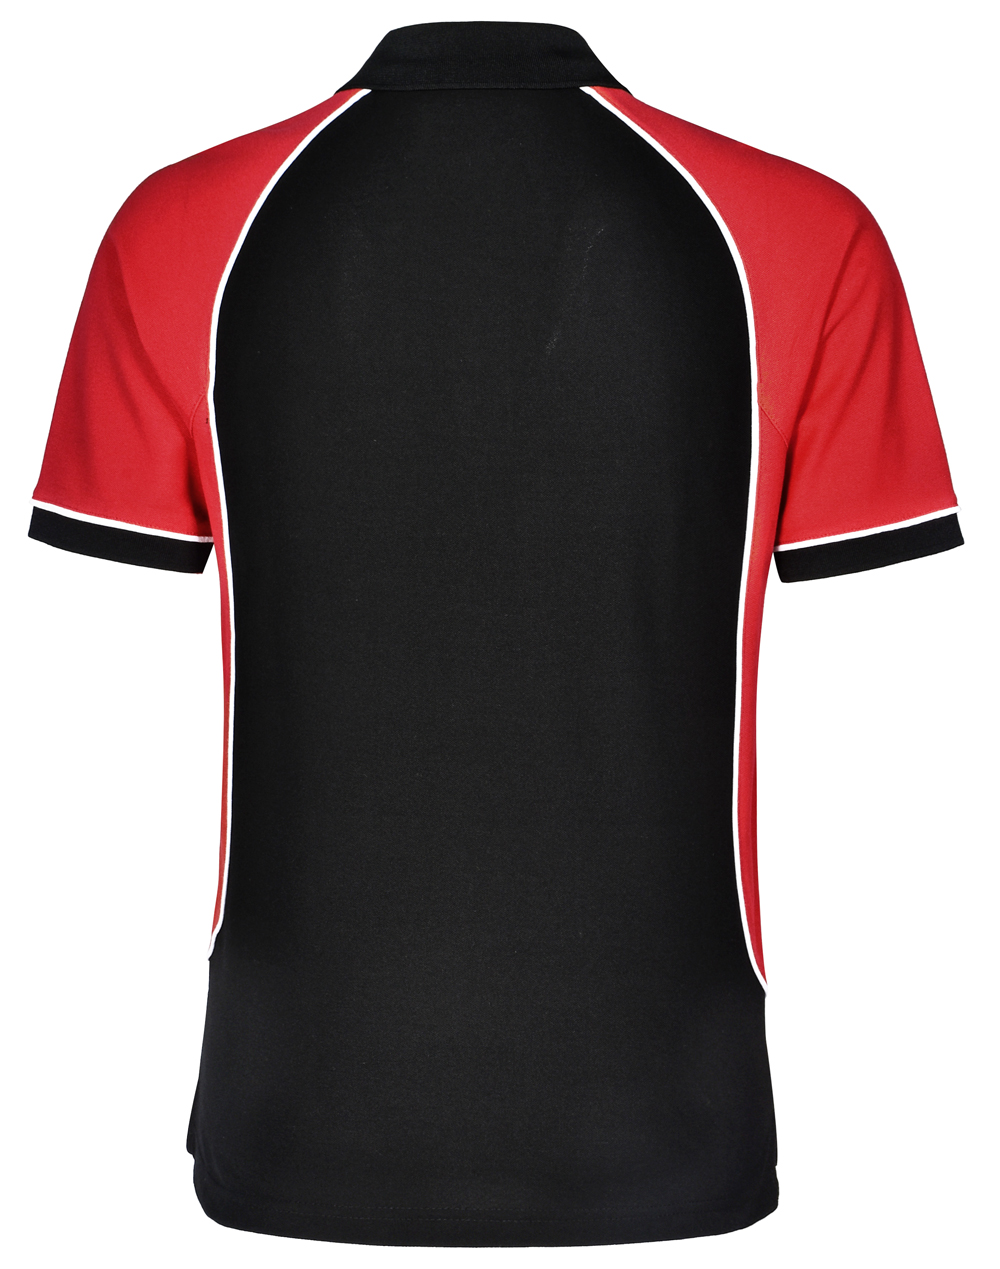 https://s3-ap-southeast-1.amazonaws.com/ws-imgs/POLOSHIRTS/PS77_BlackWhiteRed_Back_l.jpg